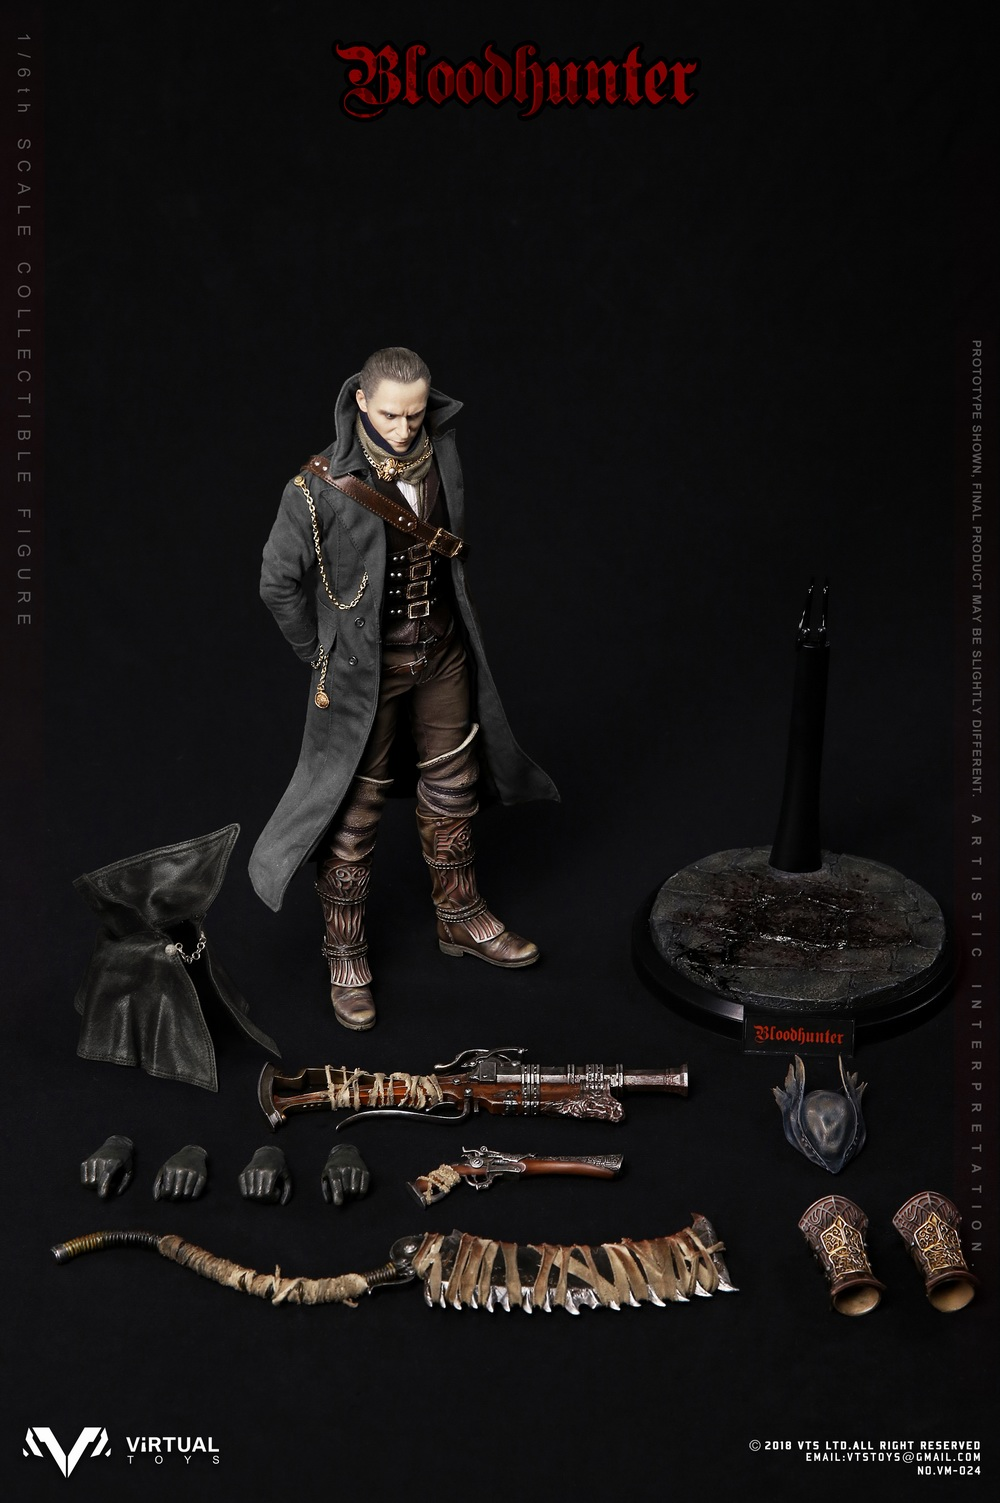 VTSToys - NEW PRODUCT: VTS TOYS New: 1/6 Blood Hunter / Blood hunter Actuator (VM-024#) 09594210